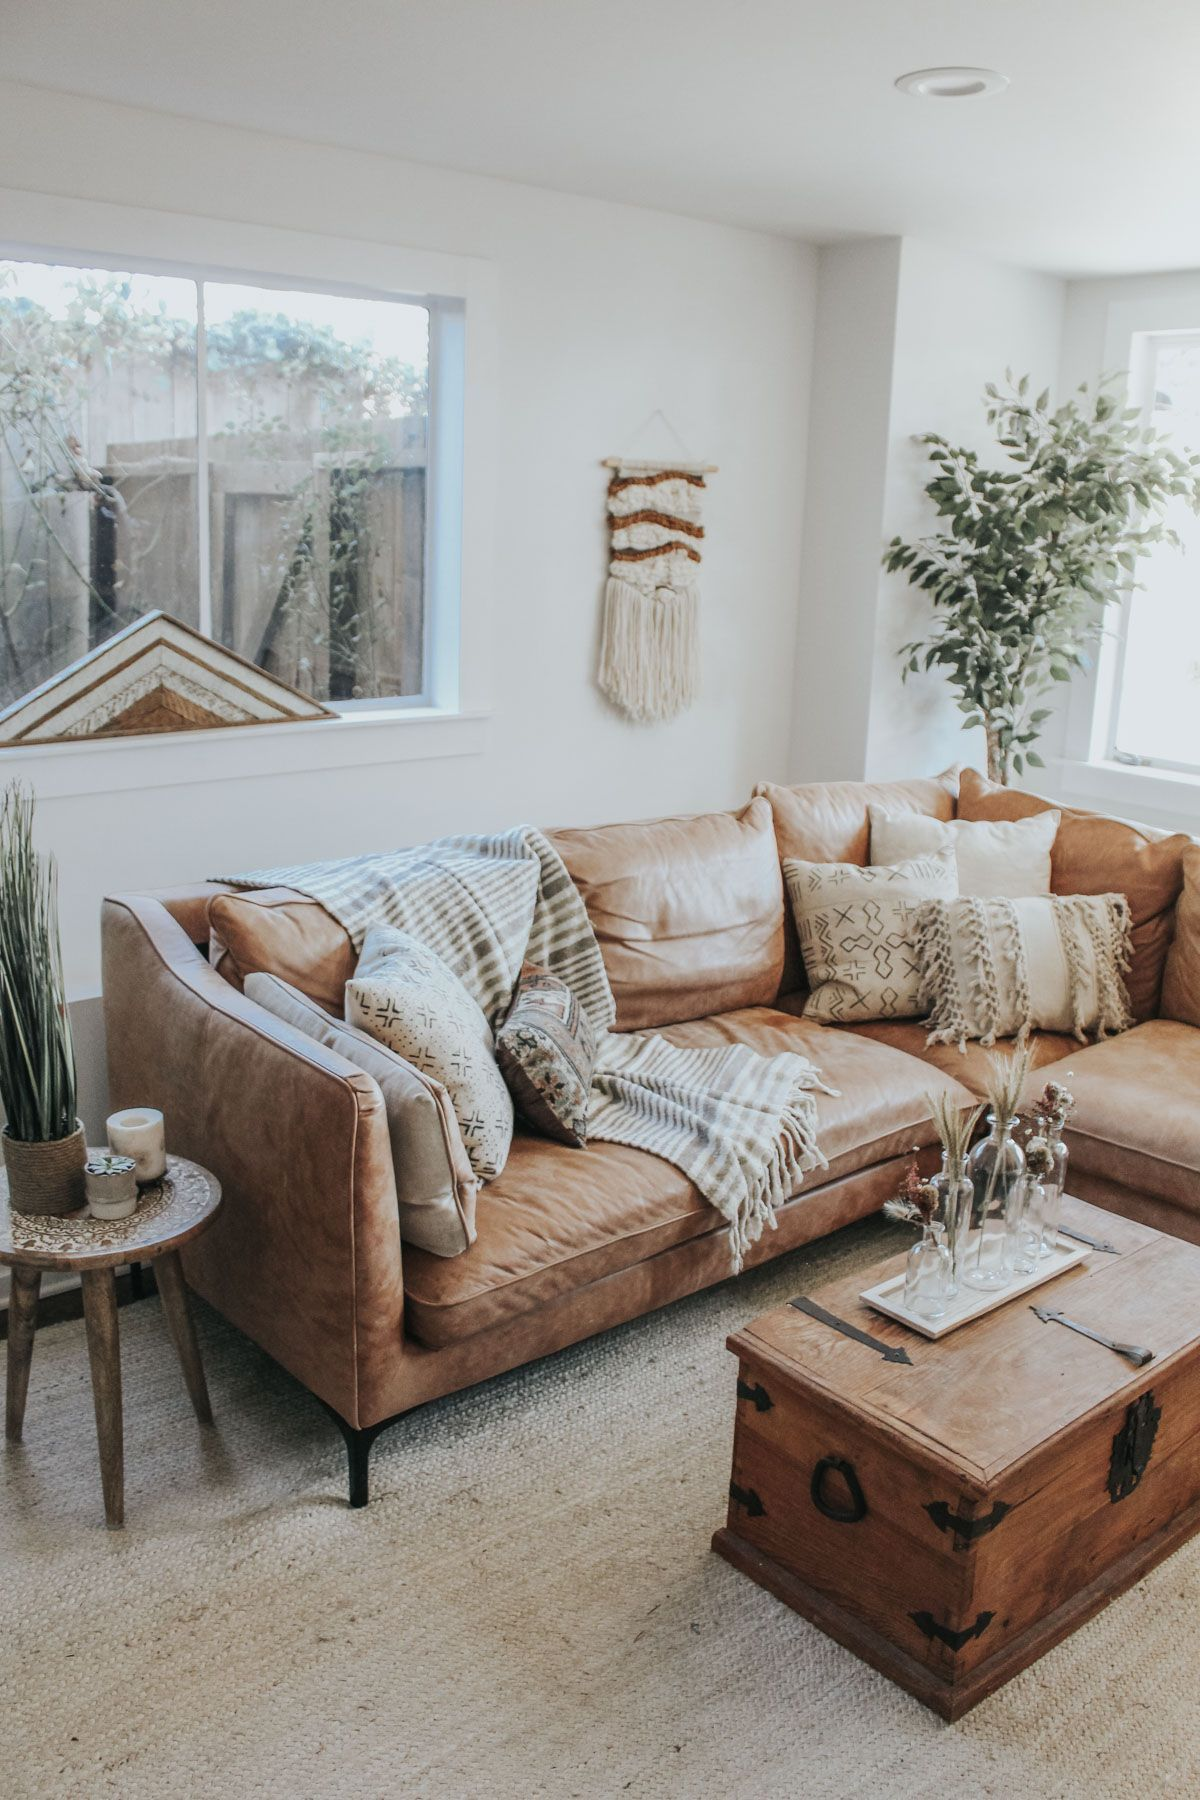 5 Ways to Make A Room Feel Finished – Advice from a 30 Something